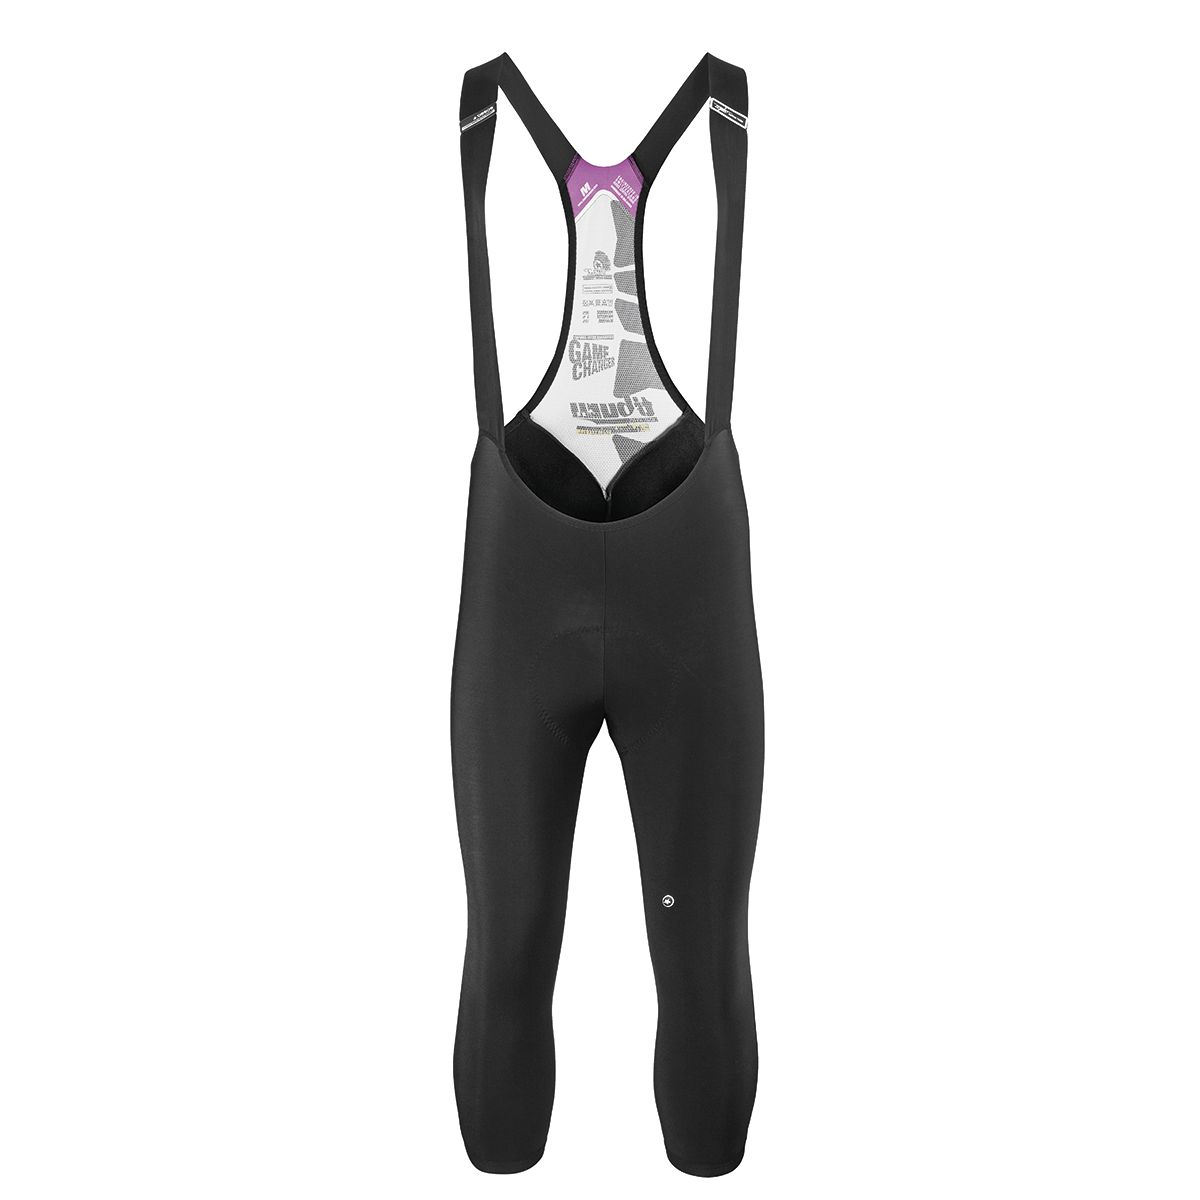 tiburuKnickersMille_S7 bib tights